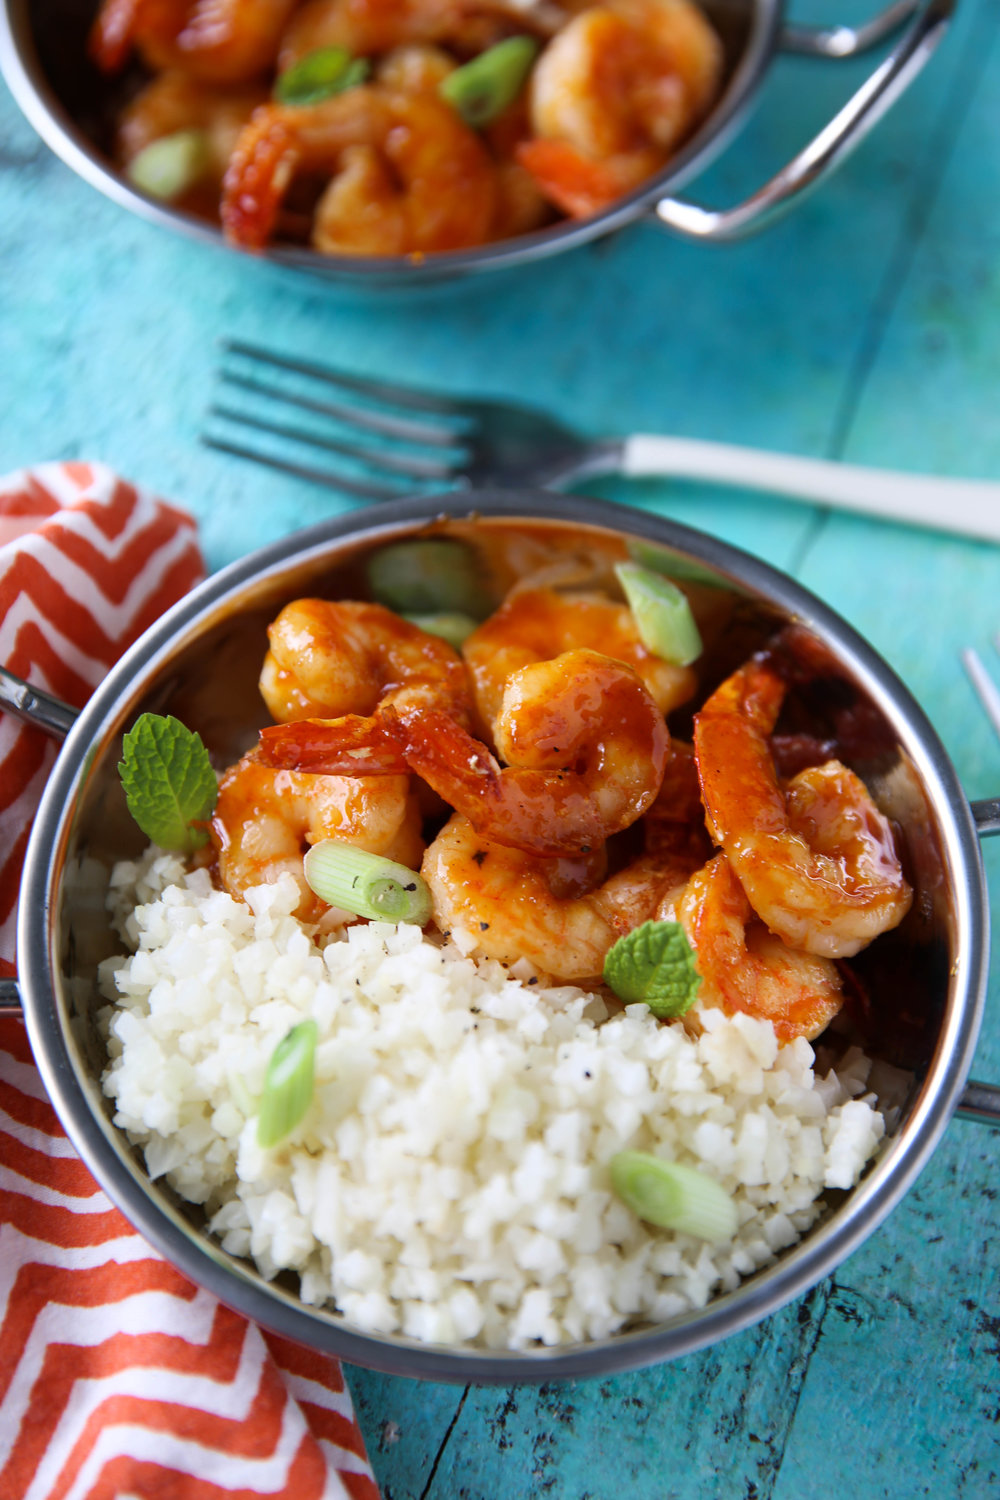 Recipe of the week - Honey Sriracha Shrimp Rice